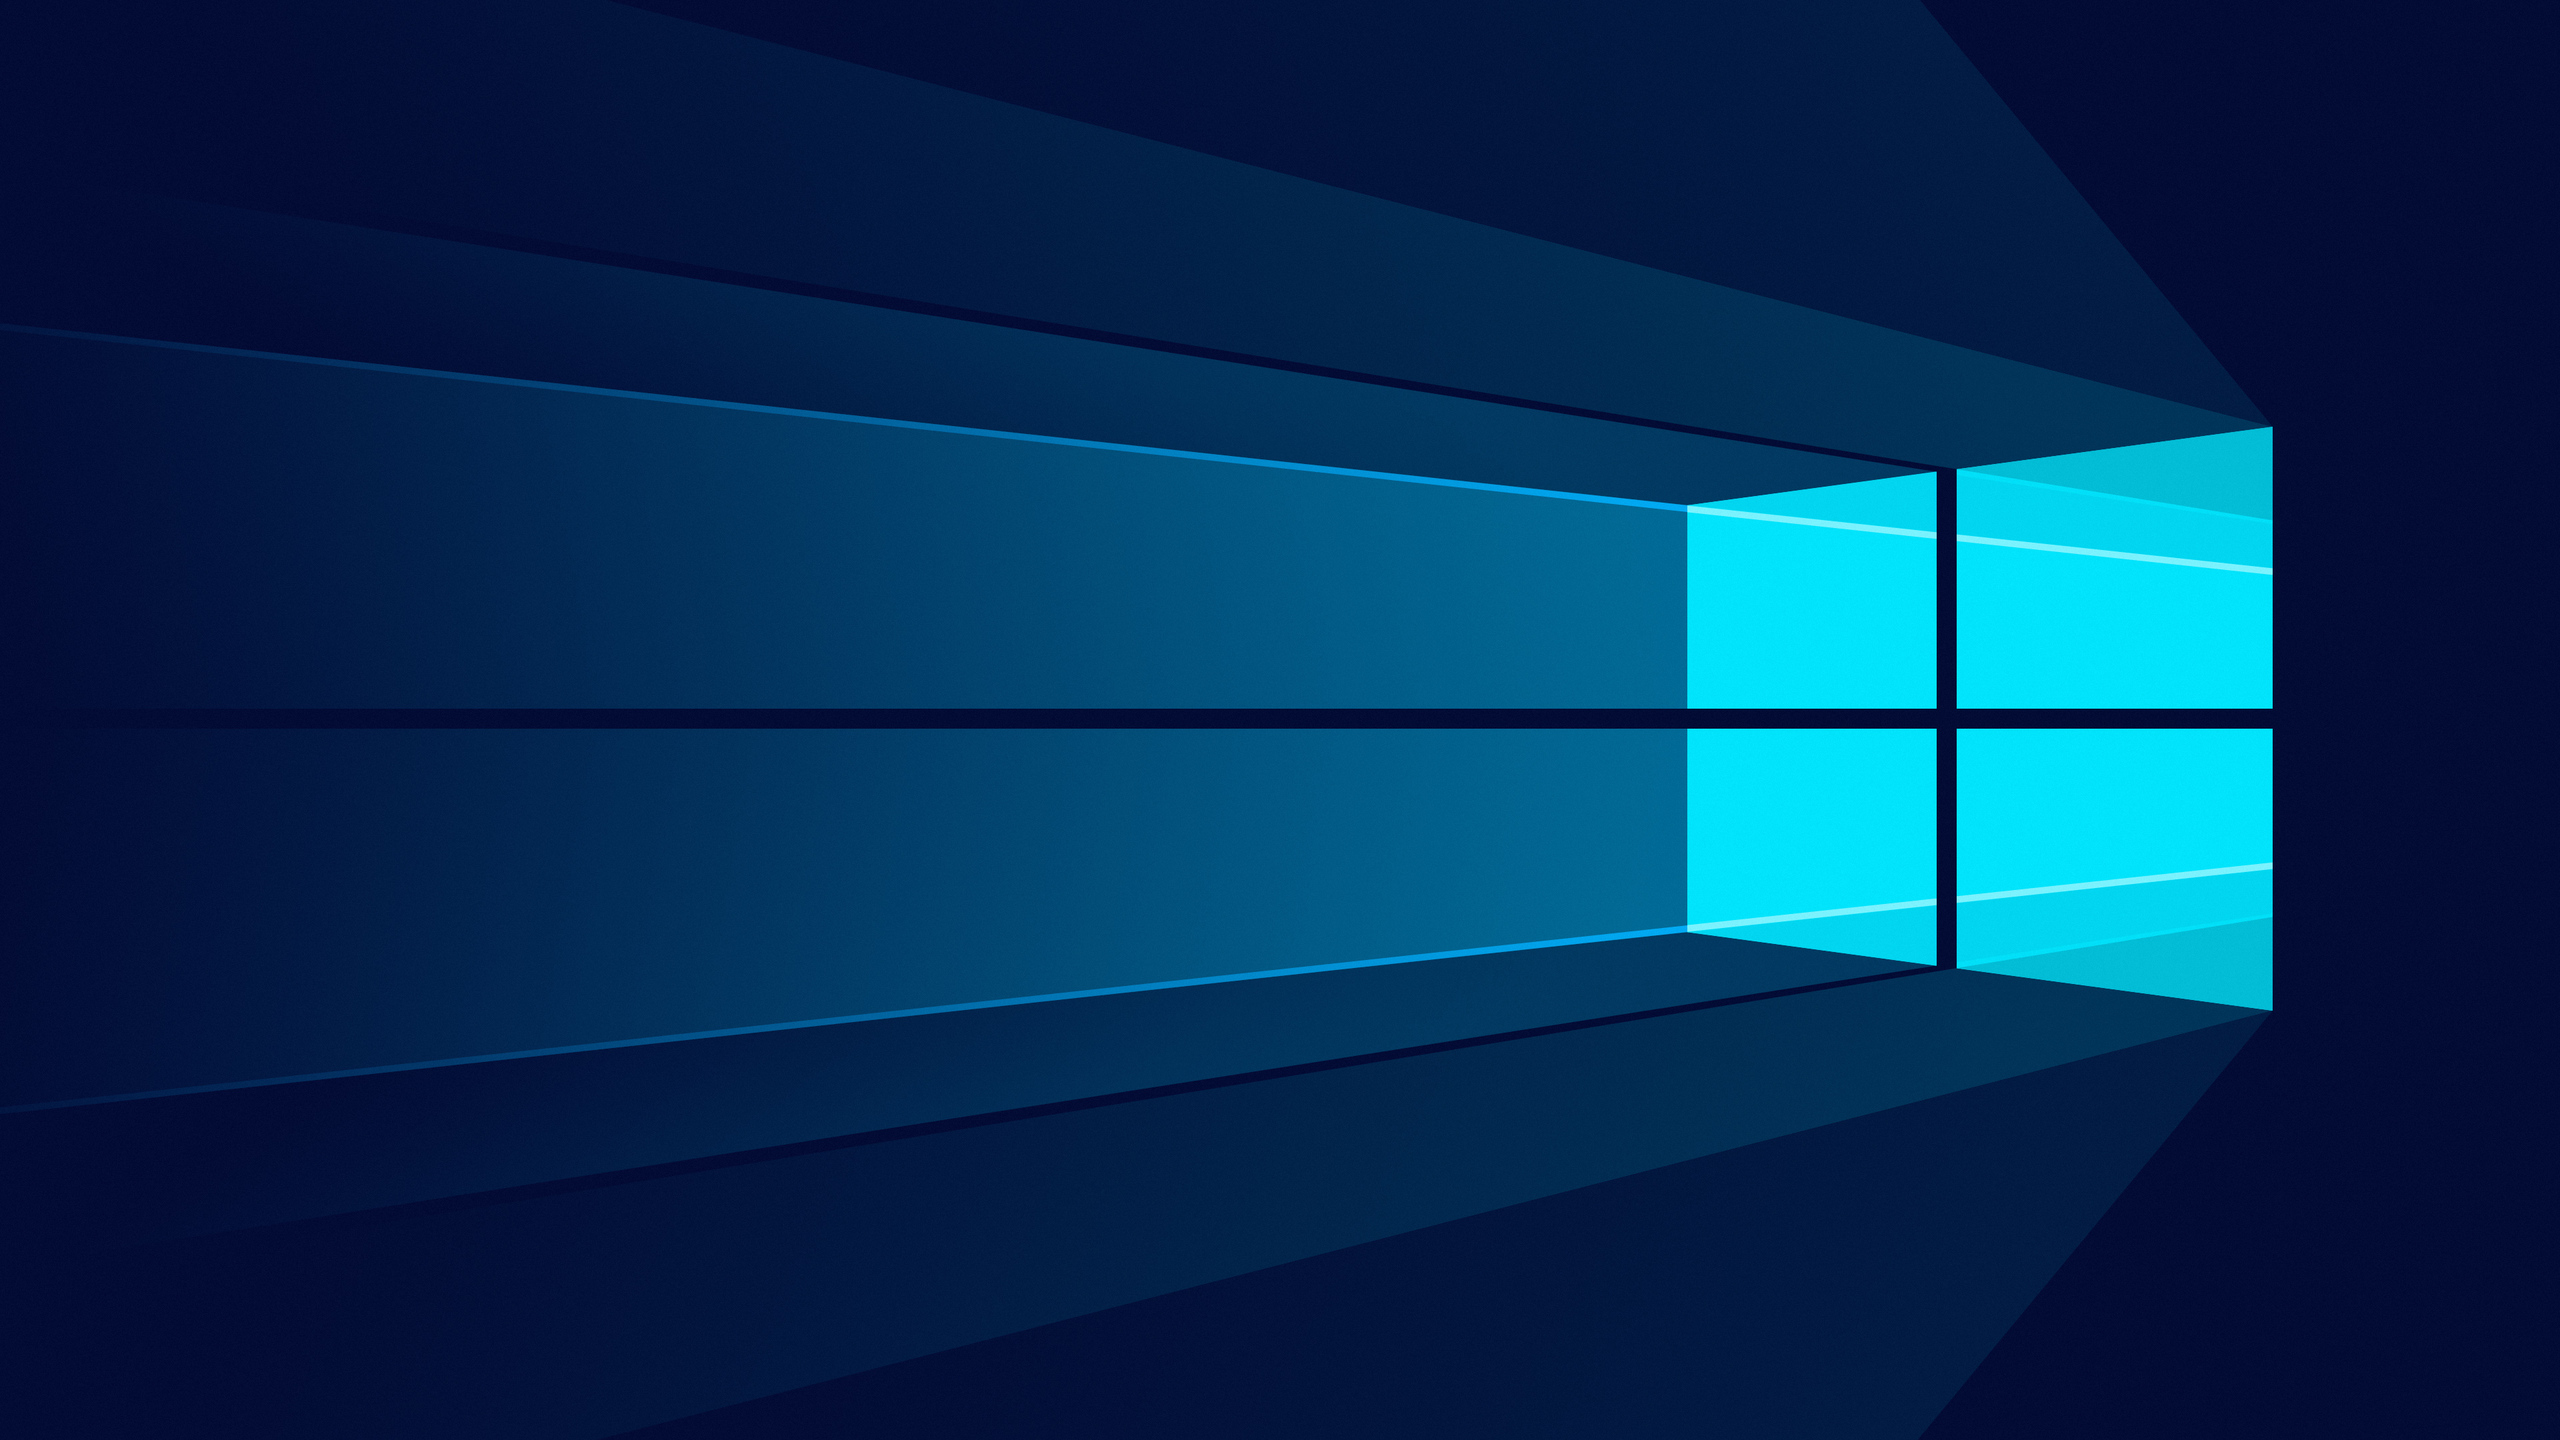 2560x1440 Windows 10 Minimalist 1440p Resolution Hd 4k Wallpapers Images Backgrounds Photos And Pictures